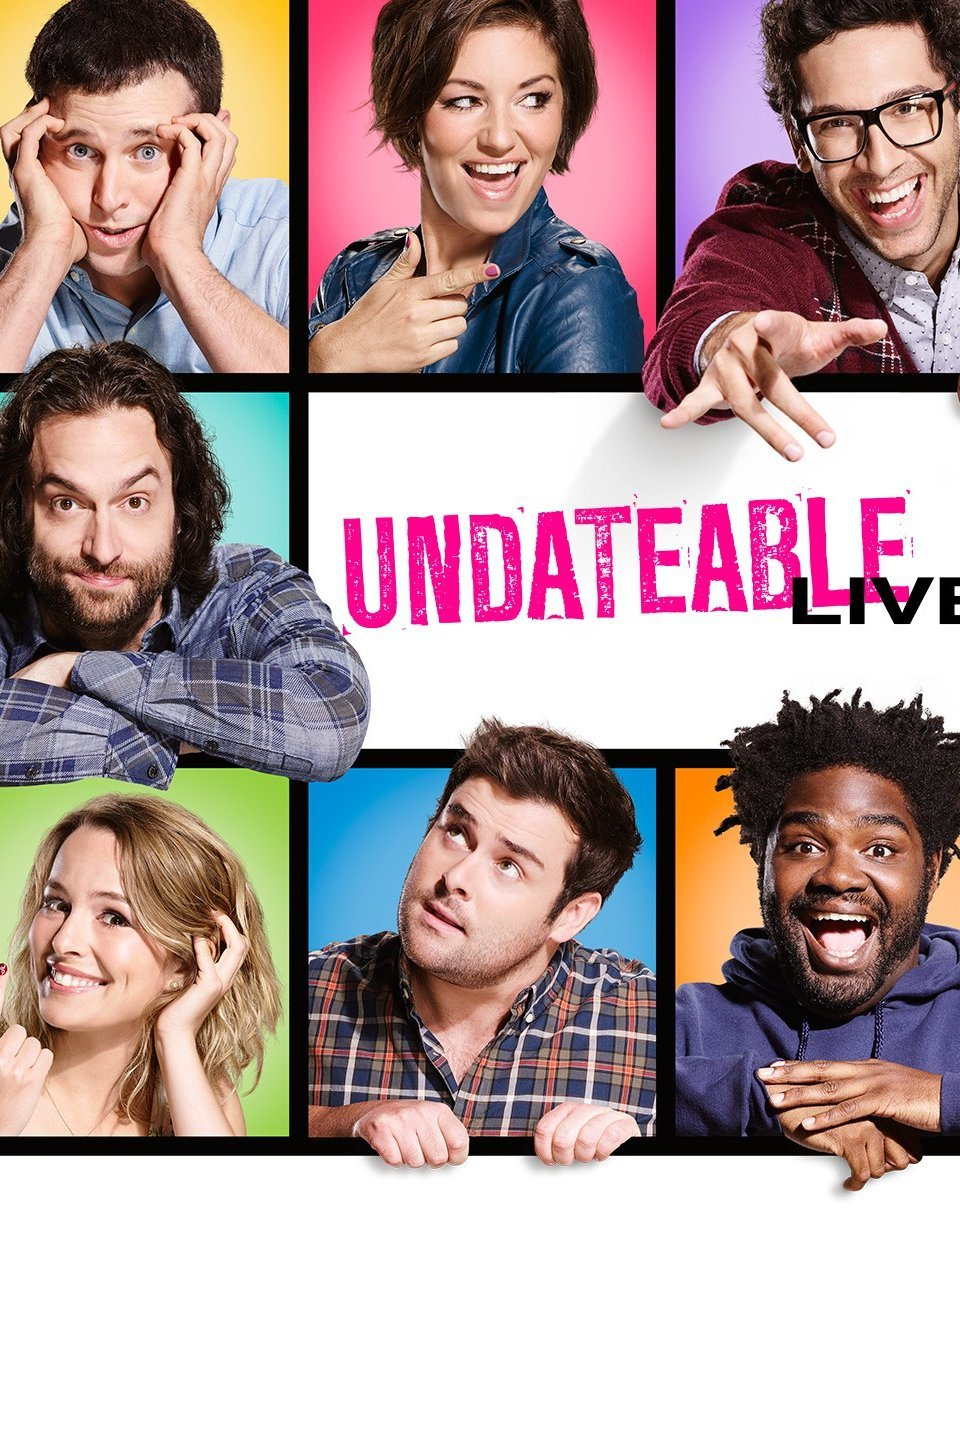 Undateable Season 1 Complete 480p WEB-DL